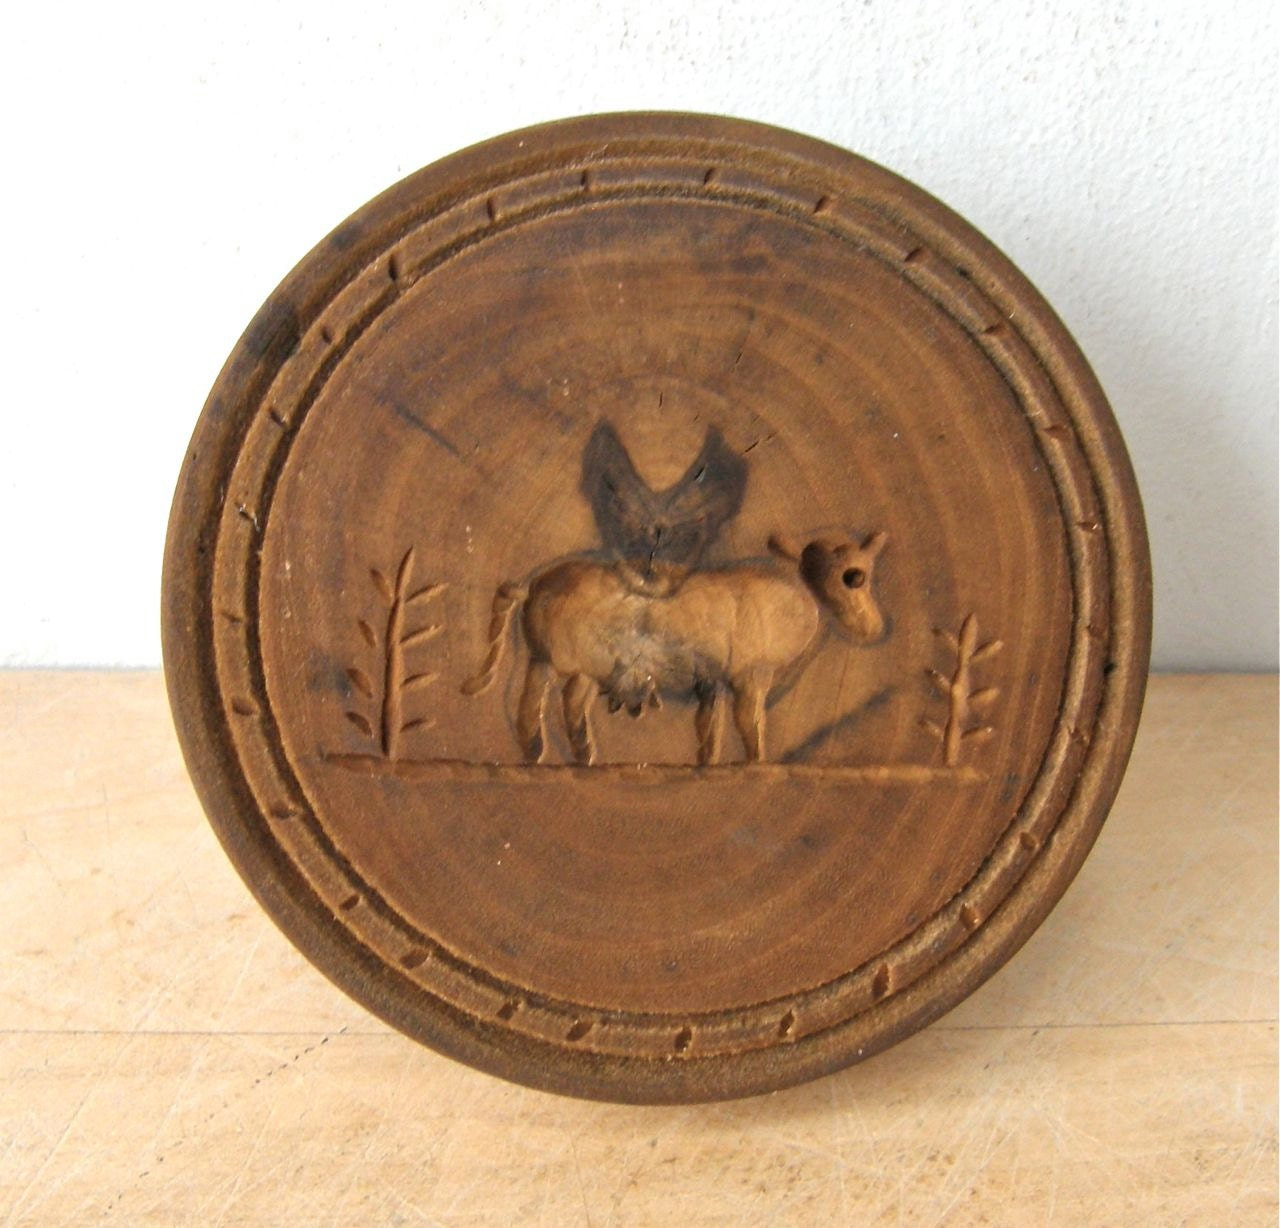 Antique wooden cow butter mold fine american by onceupntym